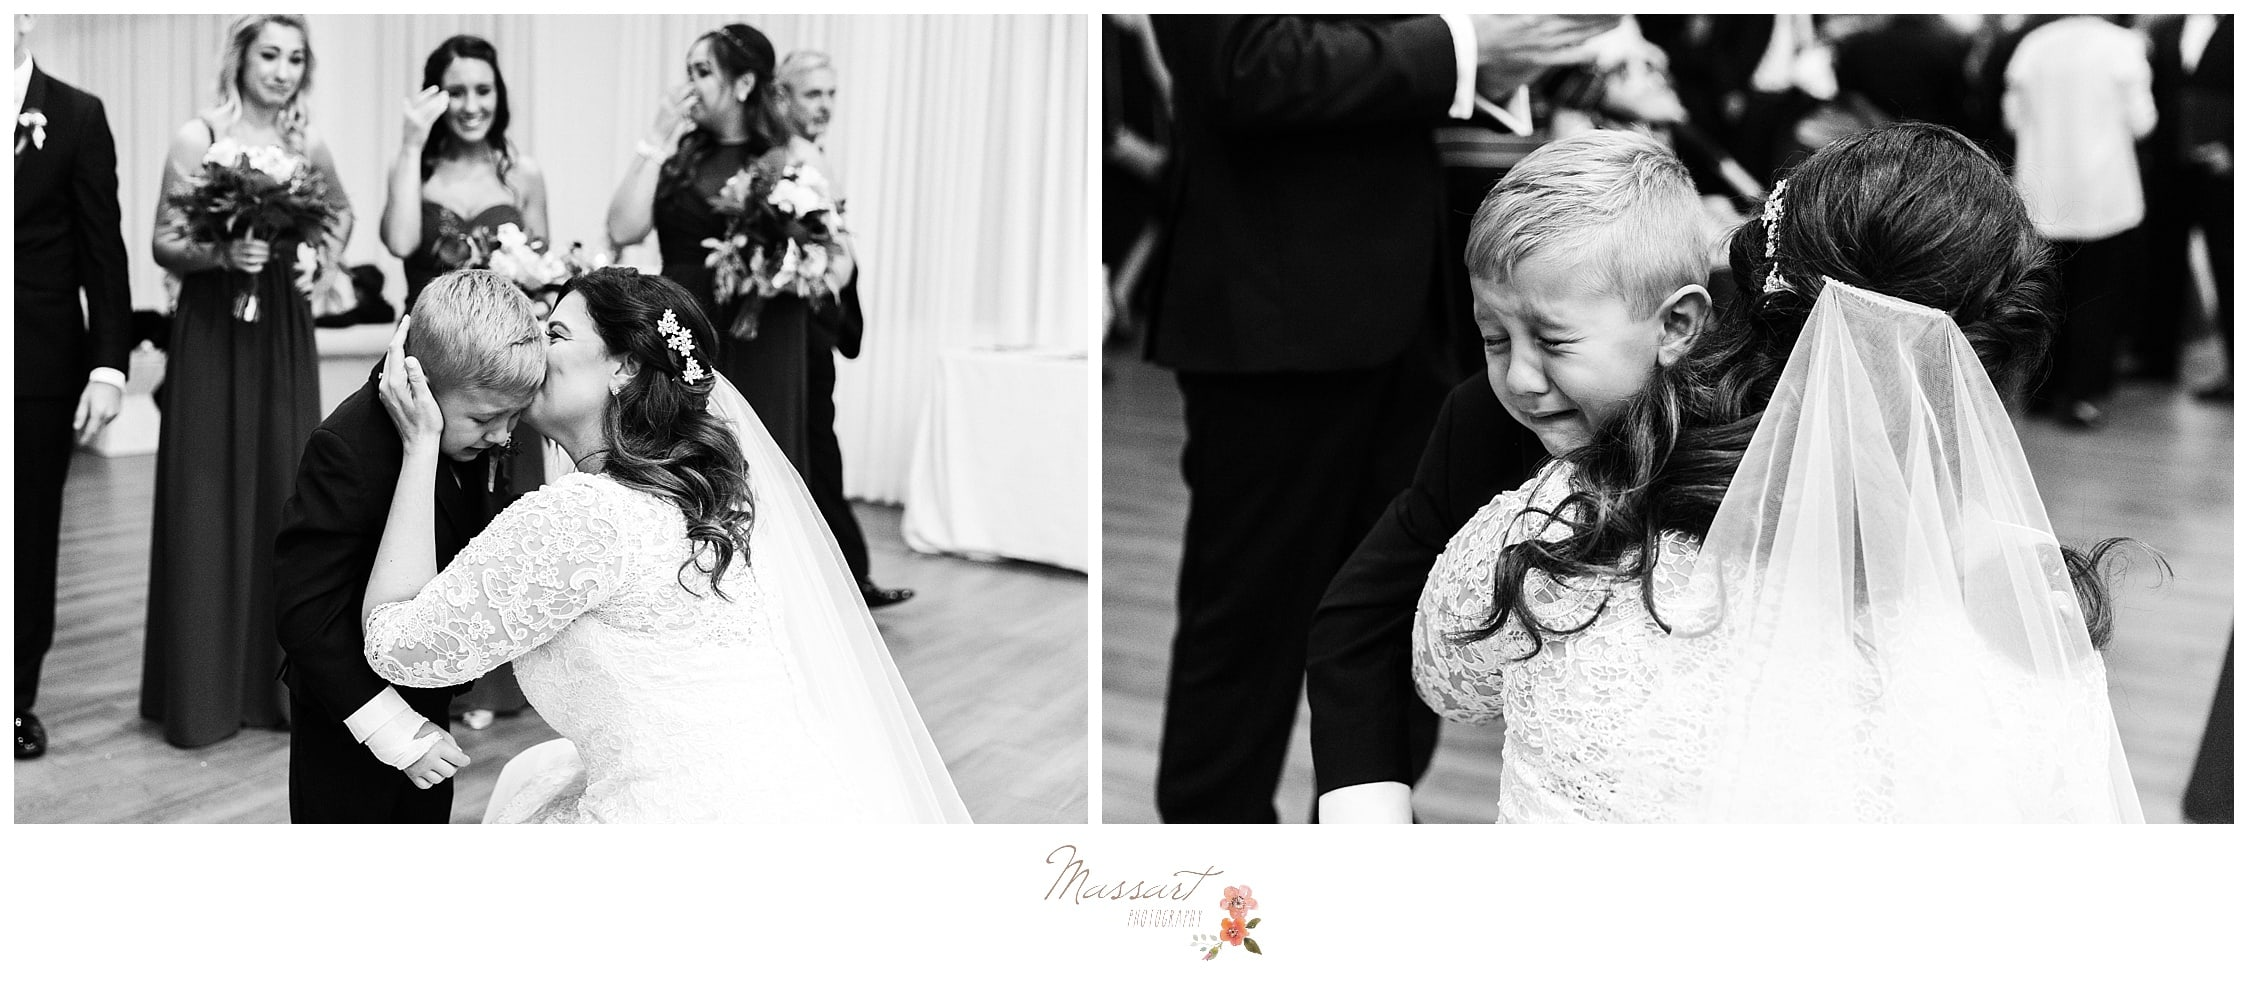 Emotional son of the groom captured by massart photographers of warwick, rhode island